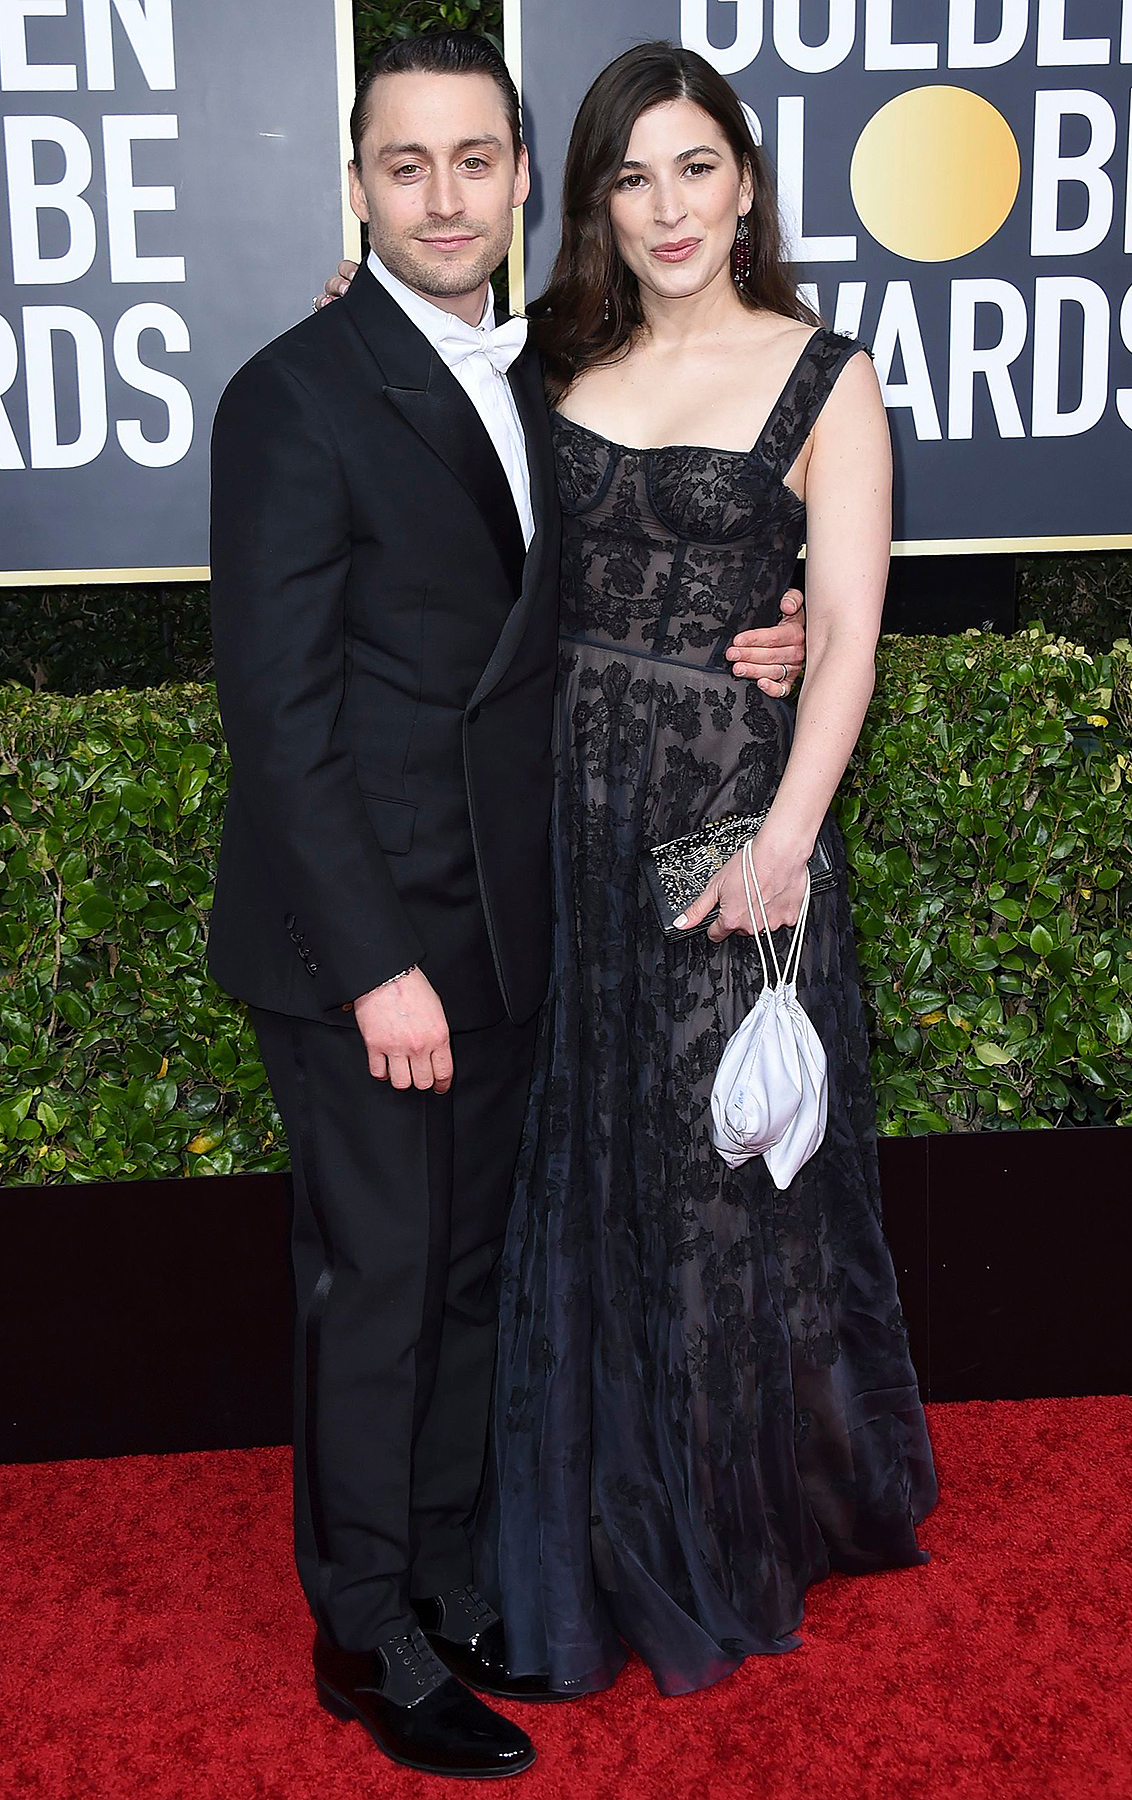 77th Annual Golden Globe Awards - Arrivals, Beverly Hills, USA - 05 Jan 2020